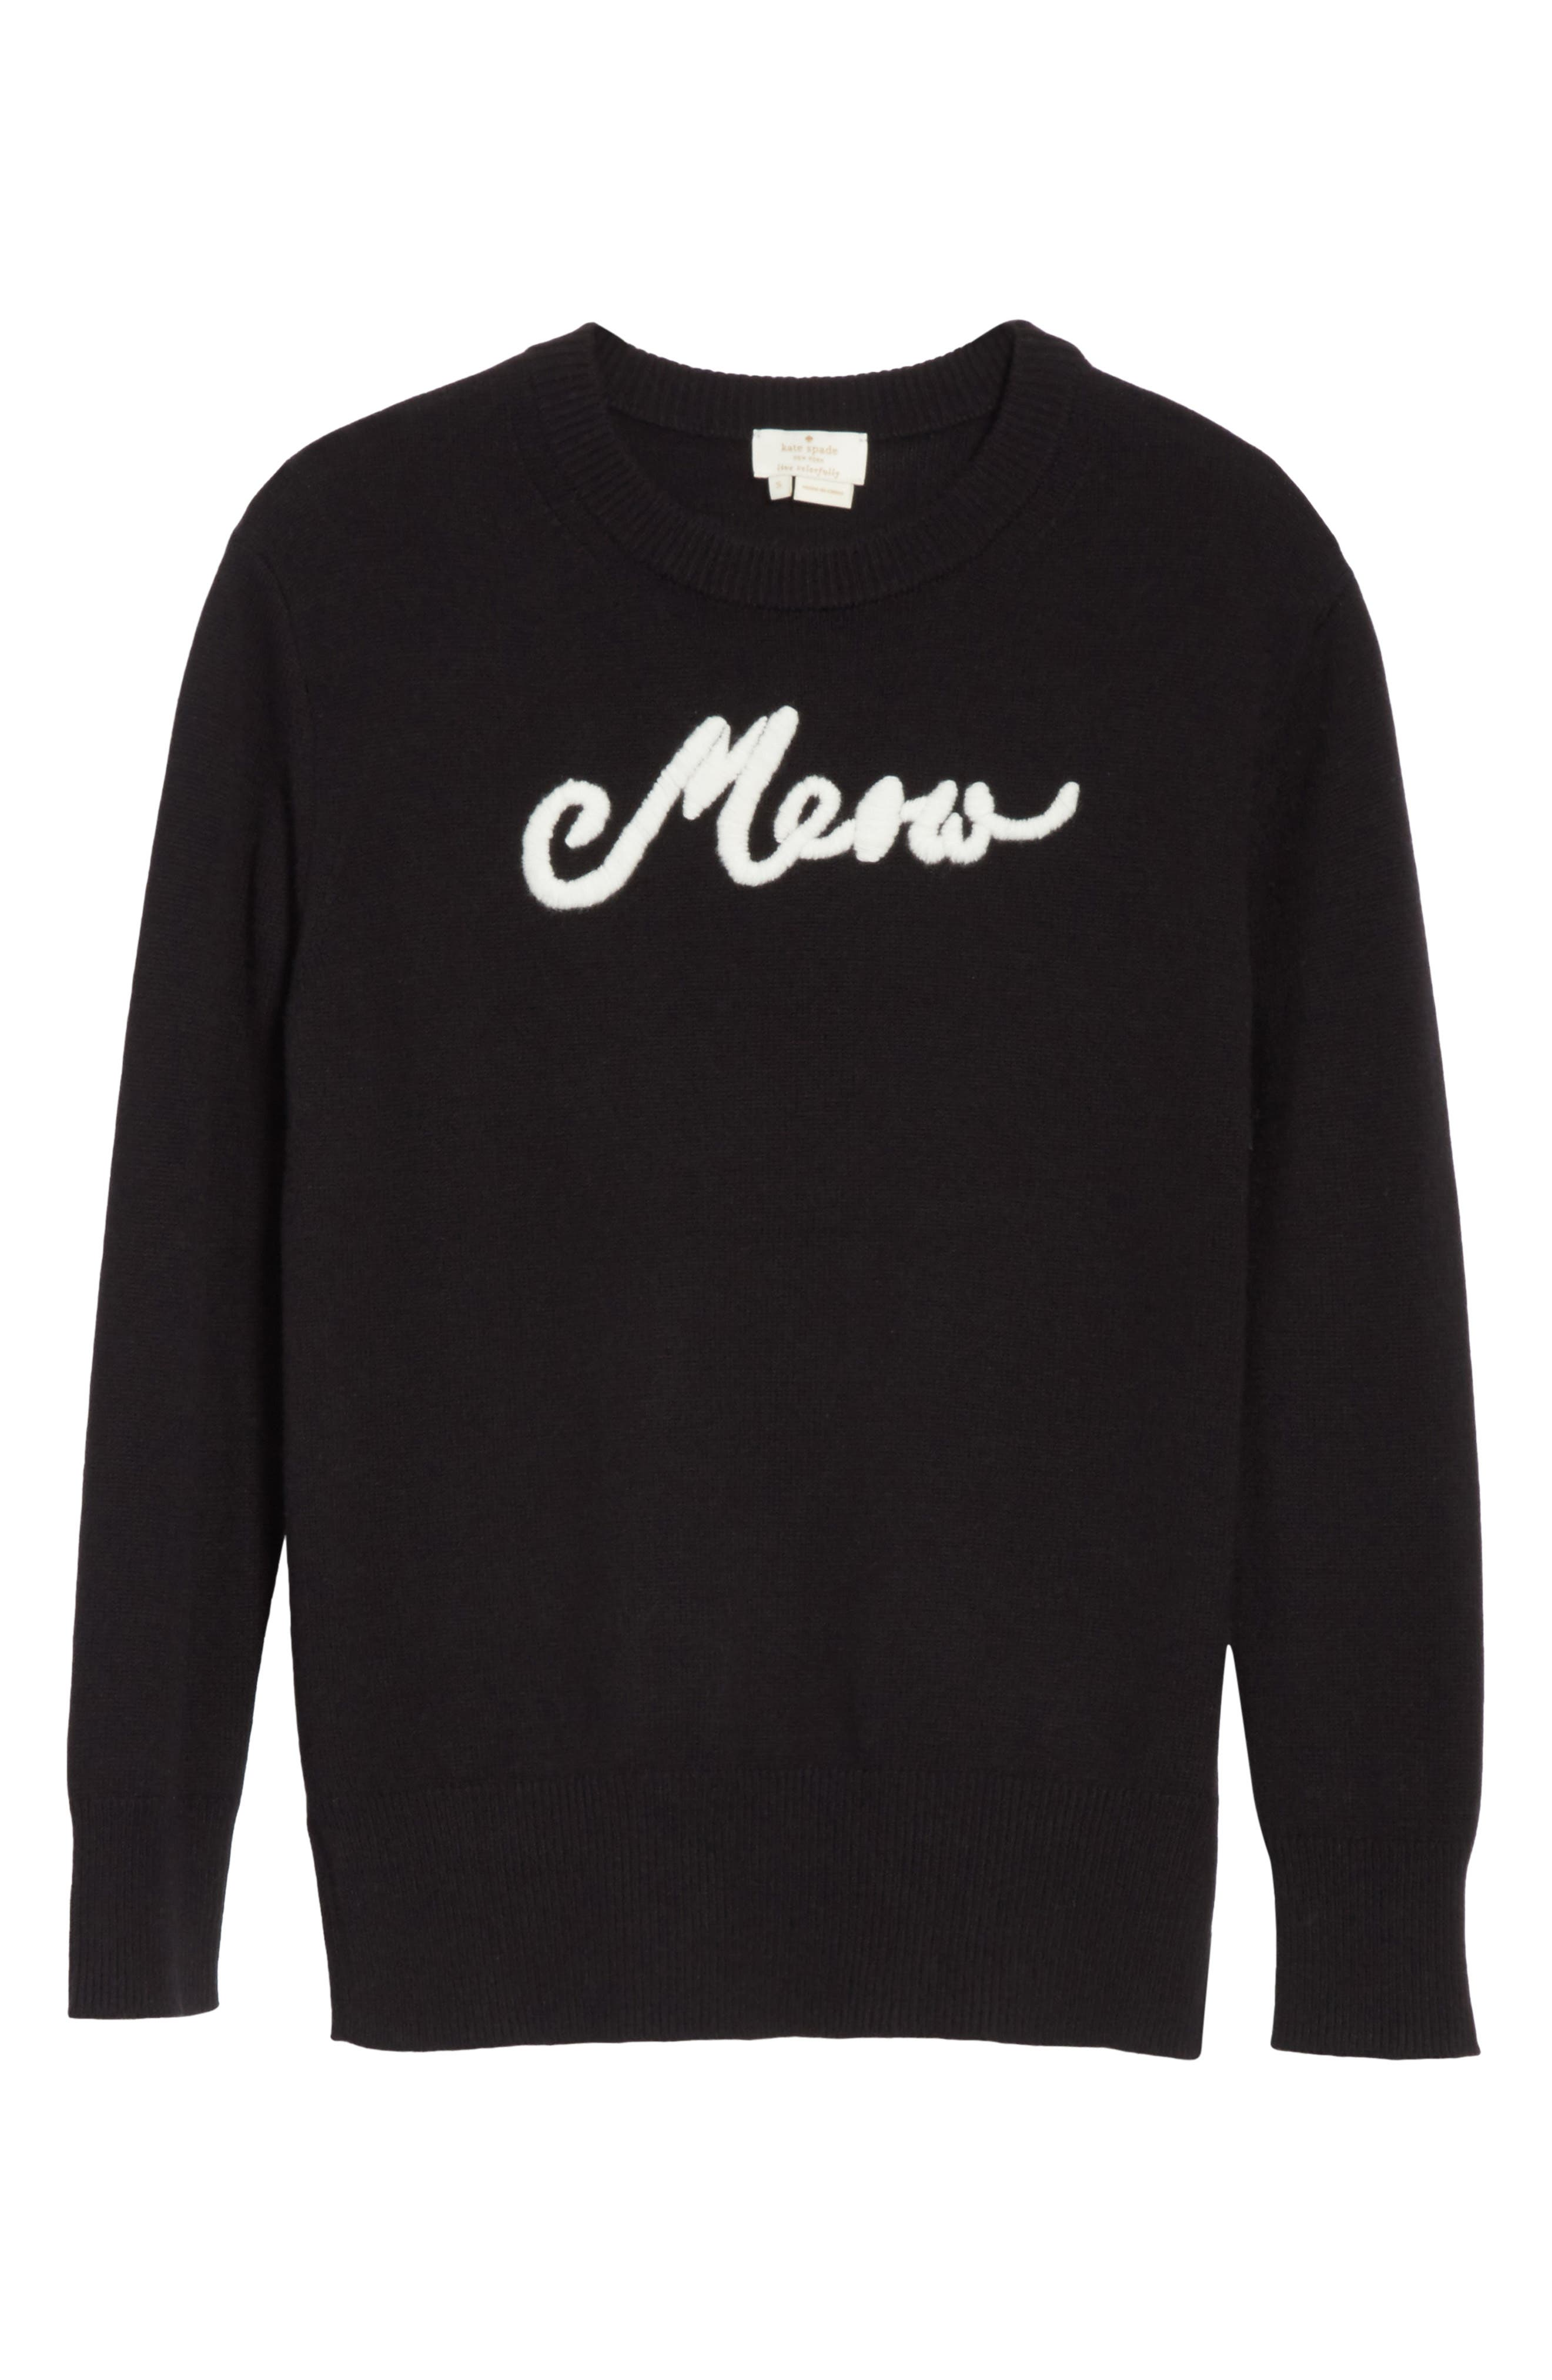 meow sweater,                             Alternate thumbnail 6, color,                             Black